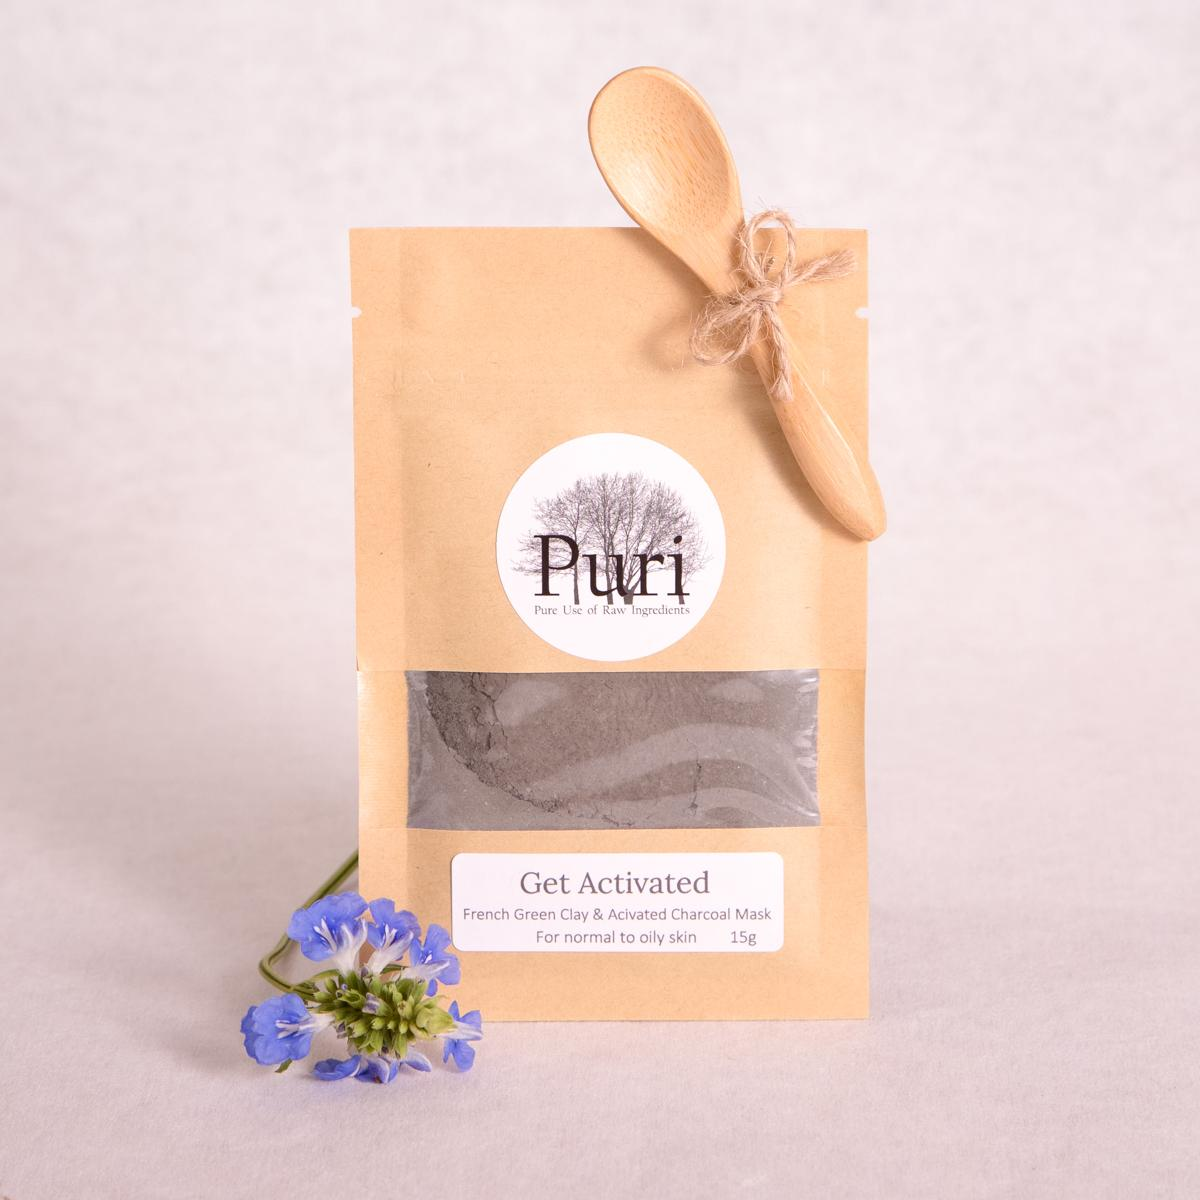 'Get Activated' French Green Clay & Activated Charcoal Mask - 15g - Clay Mask - Throw Some Seeds - Australian gardening gifts and eco products online!